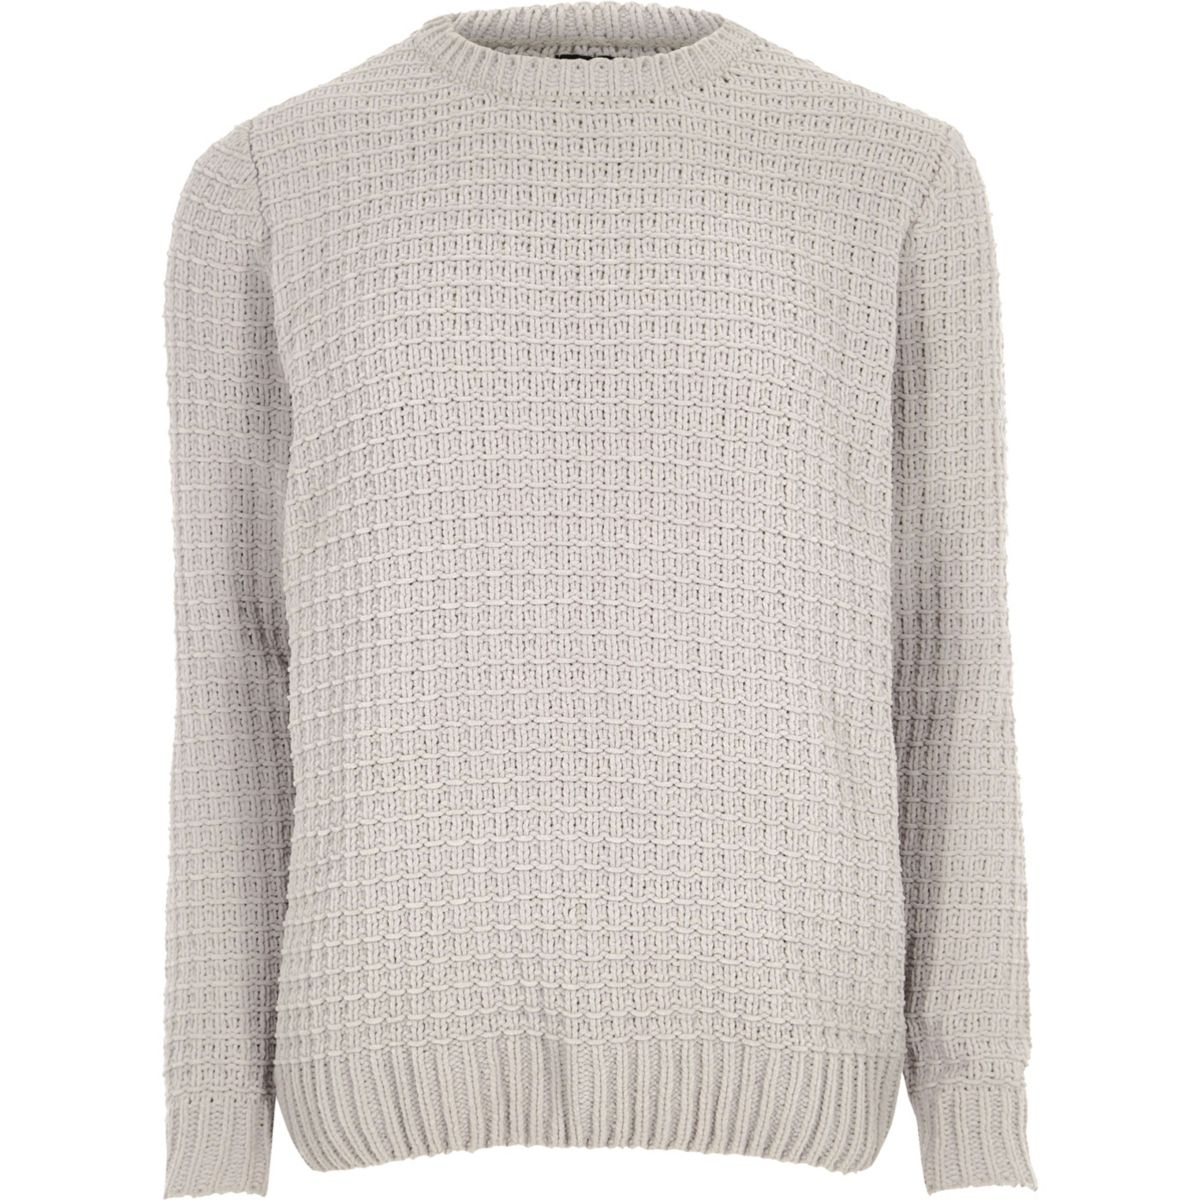 Light grey textured chenille knit sweater